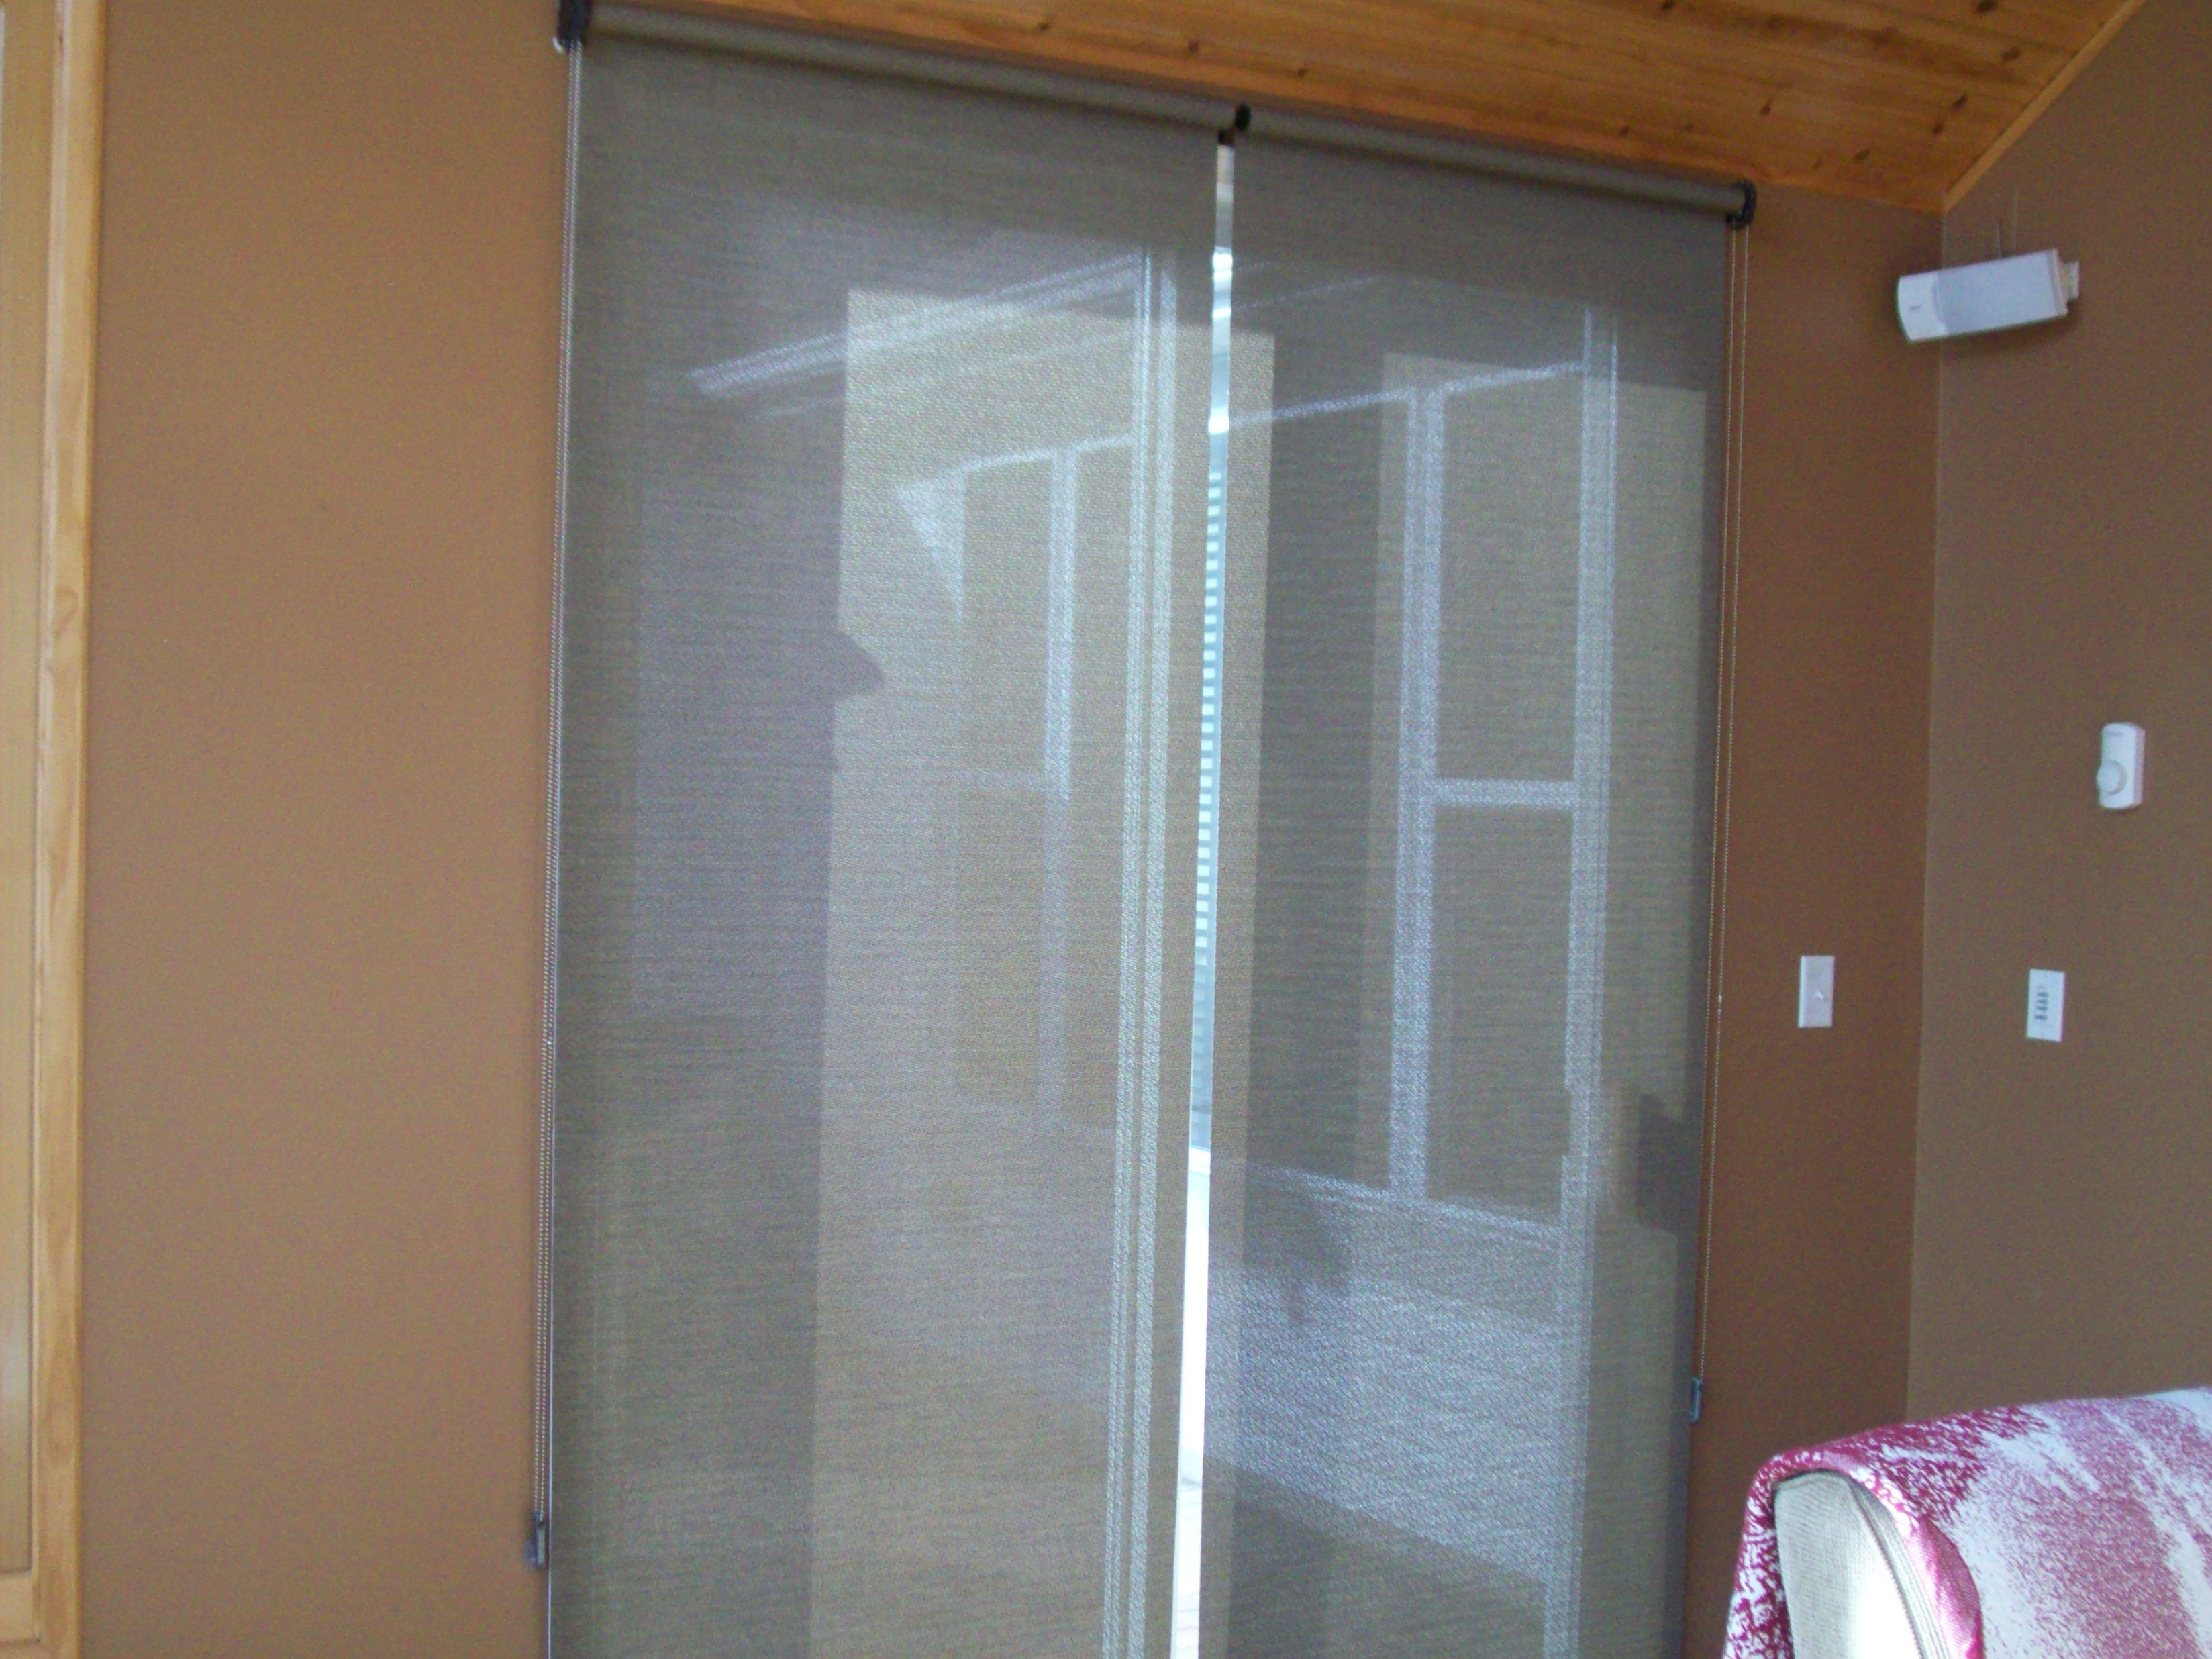 2 sun screen shades butting together on a patio door solar 2 sun screen shades butting together on a patio door solar shades pinterest solar shades patios and doors eventelaan Images